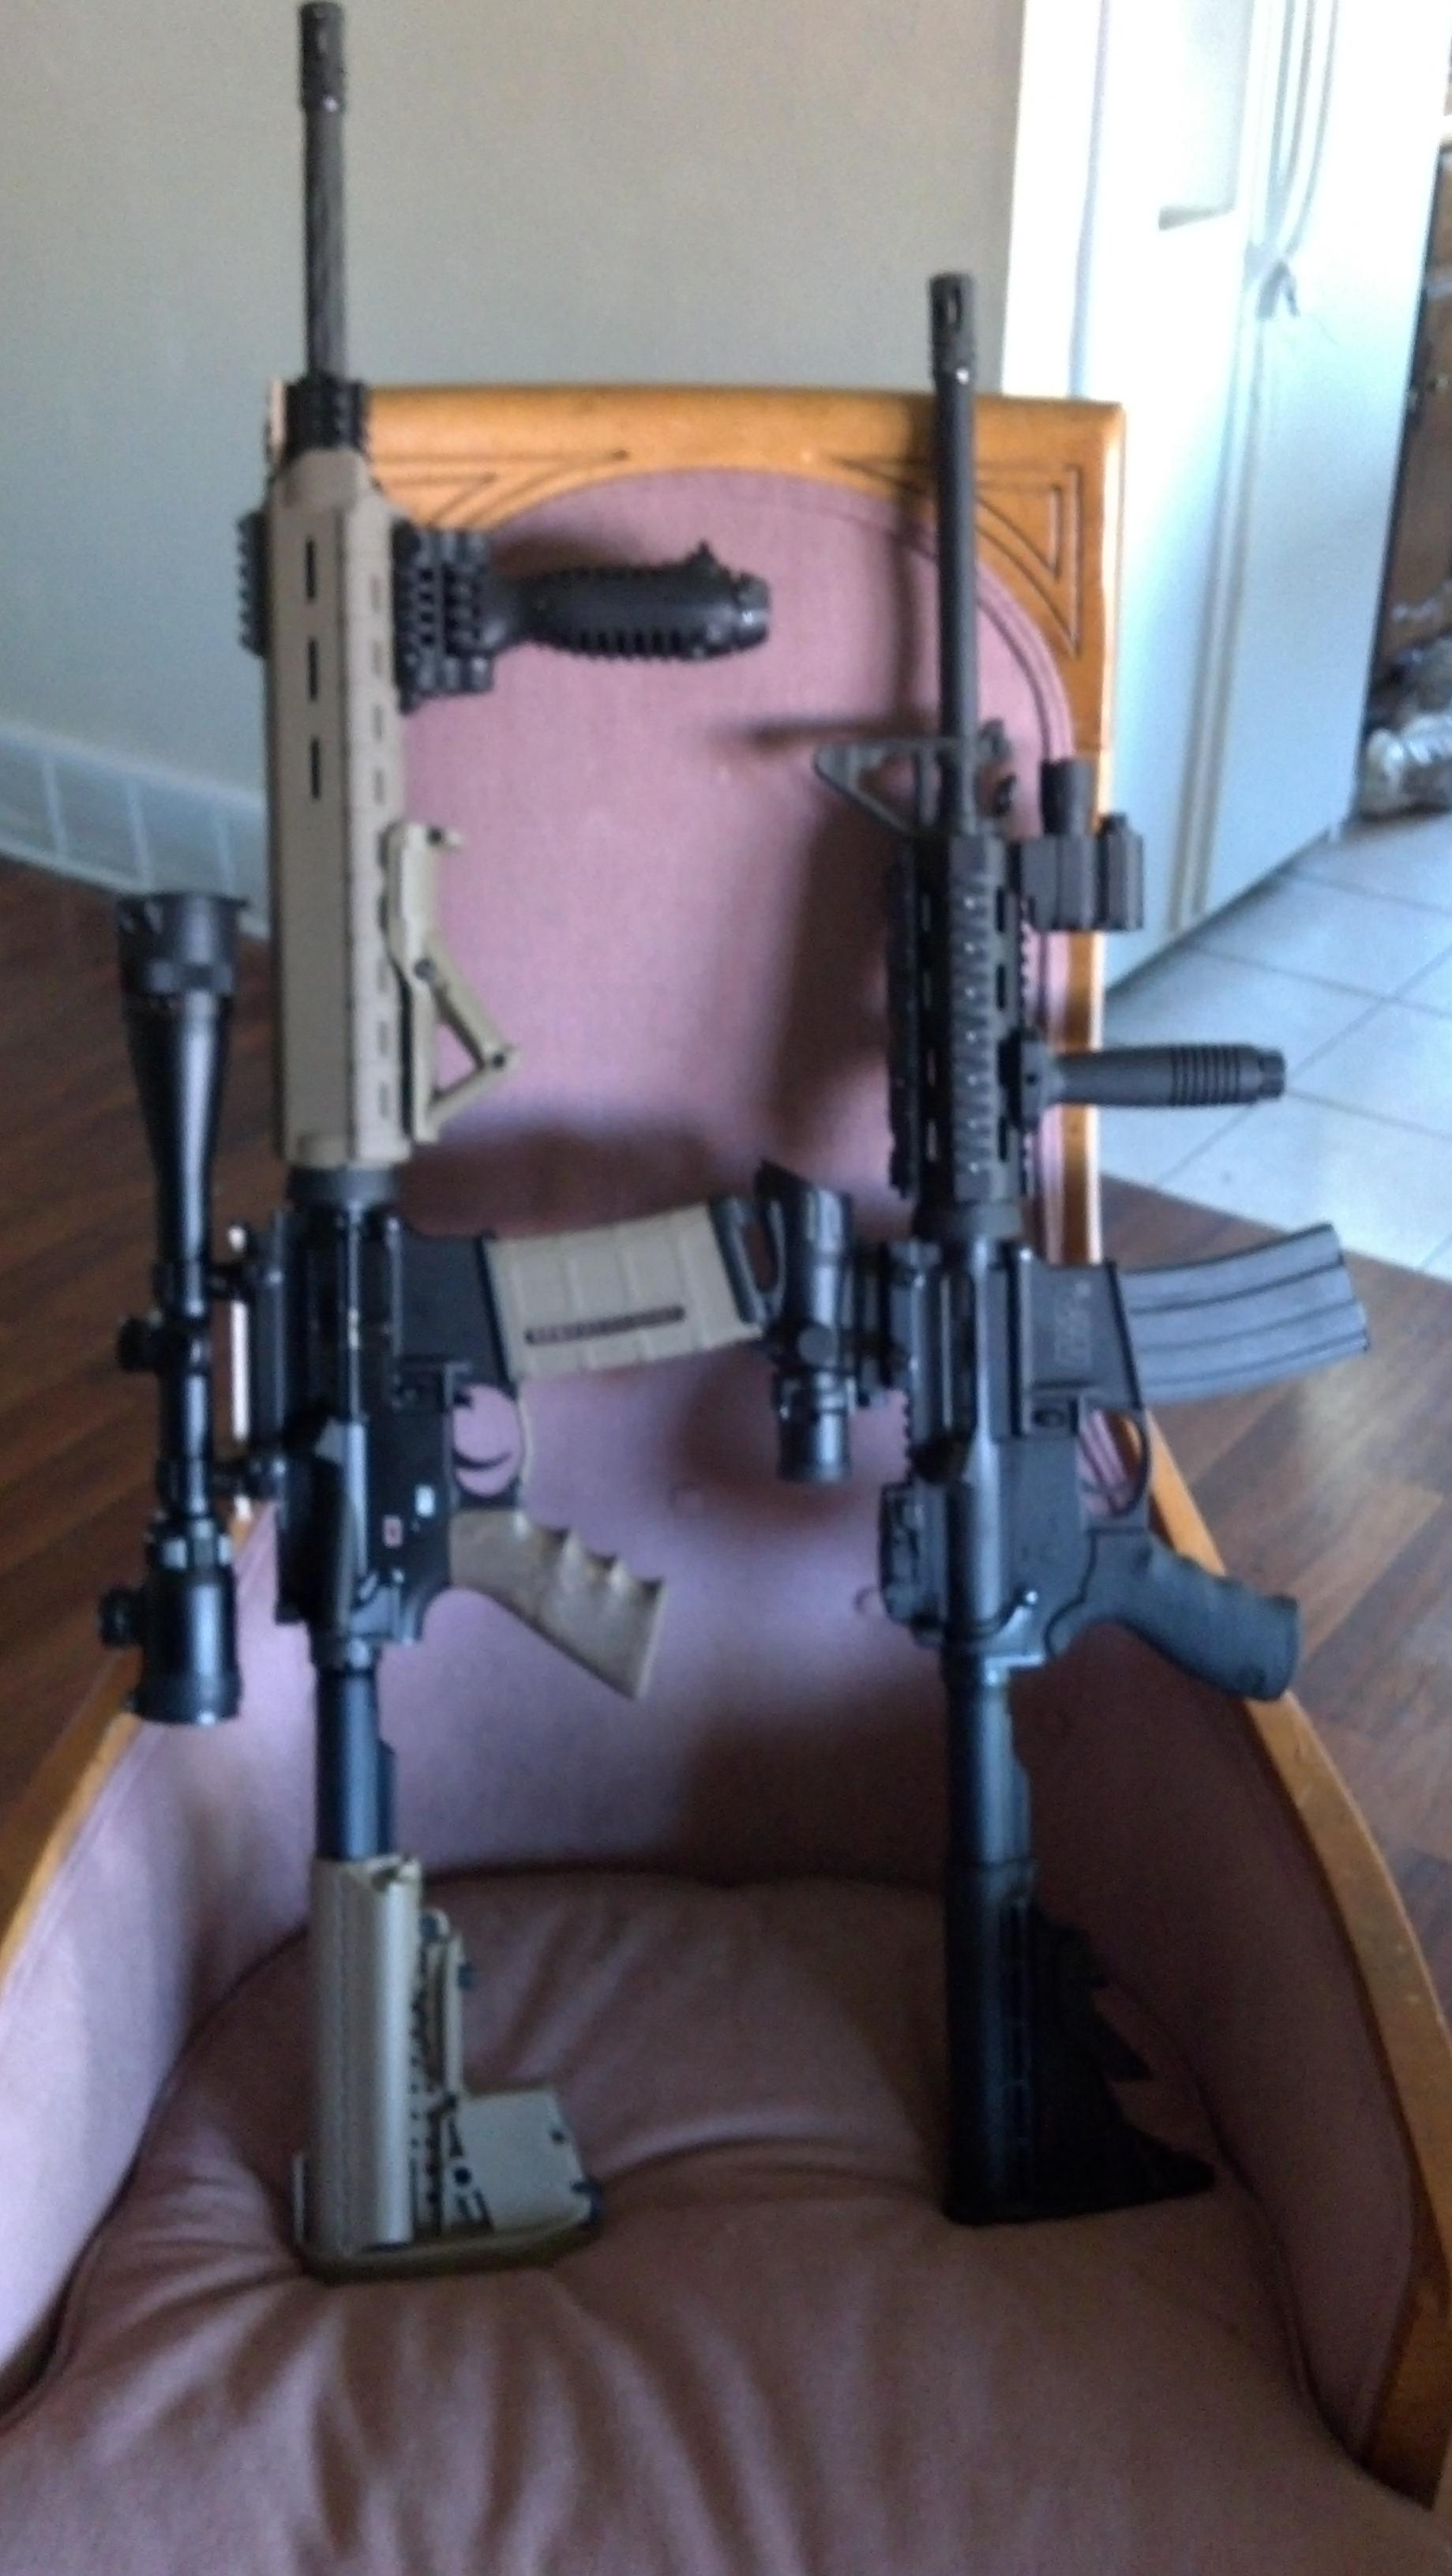 Just picked up my first AR15, what to do now?-2012-04-22_15-14-33_456.jpg